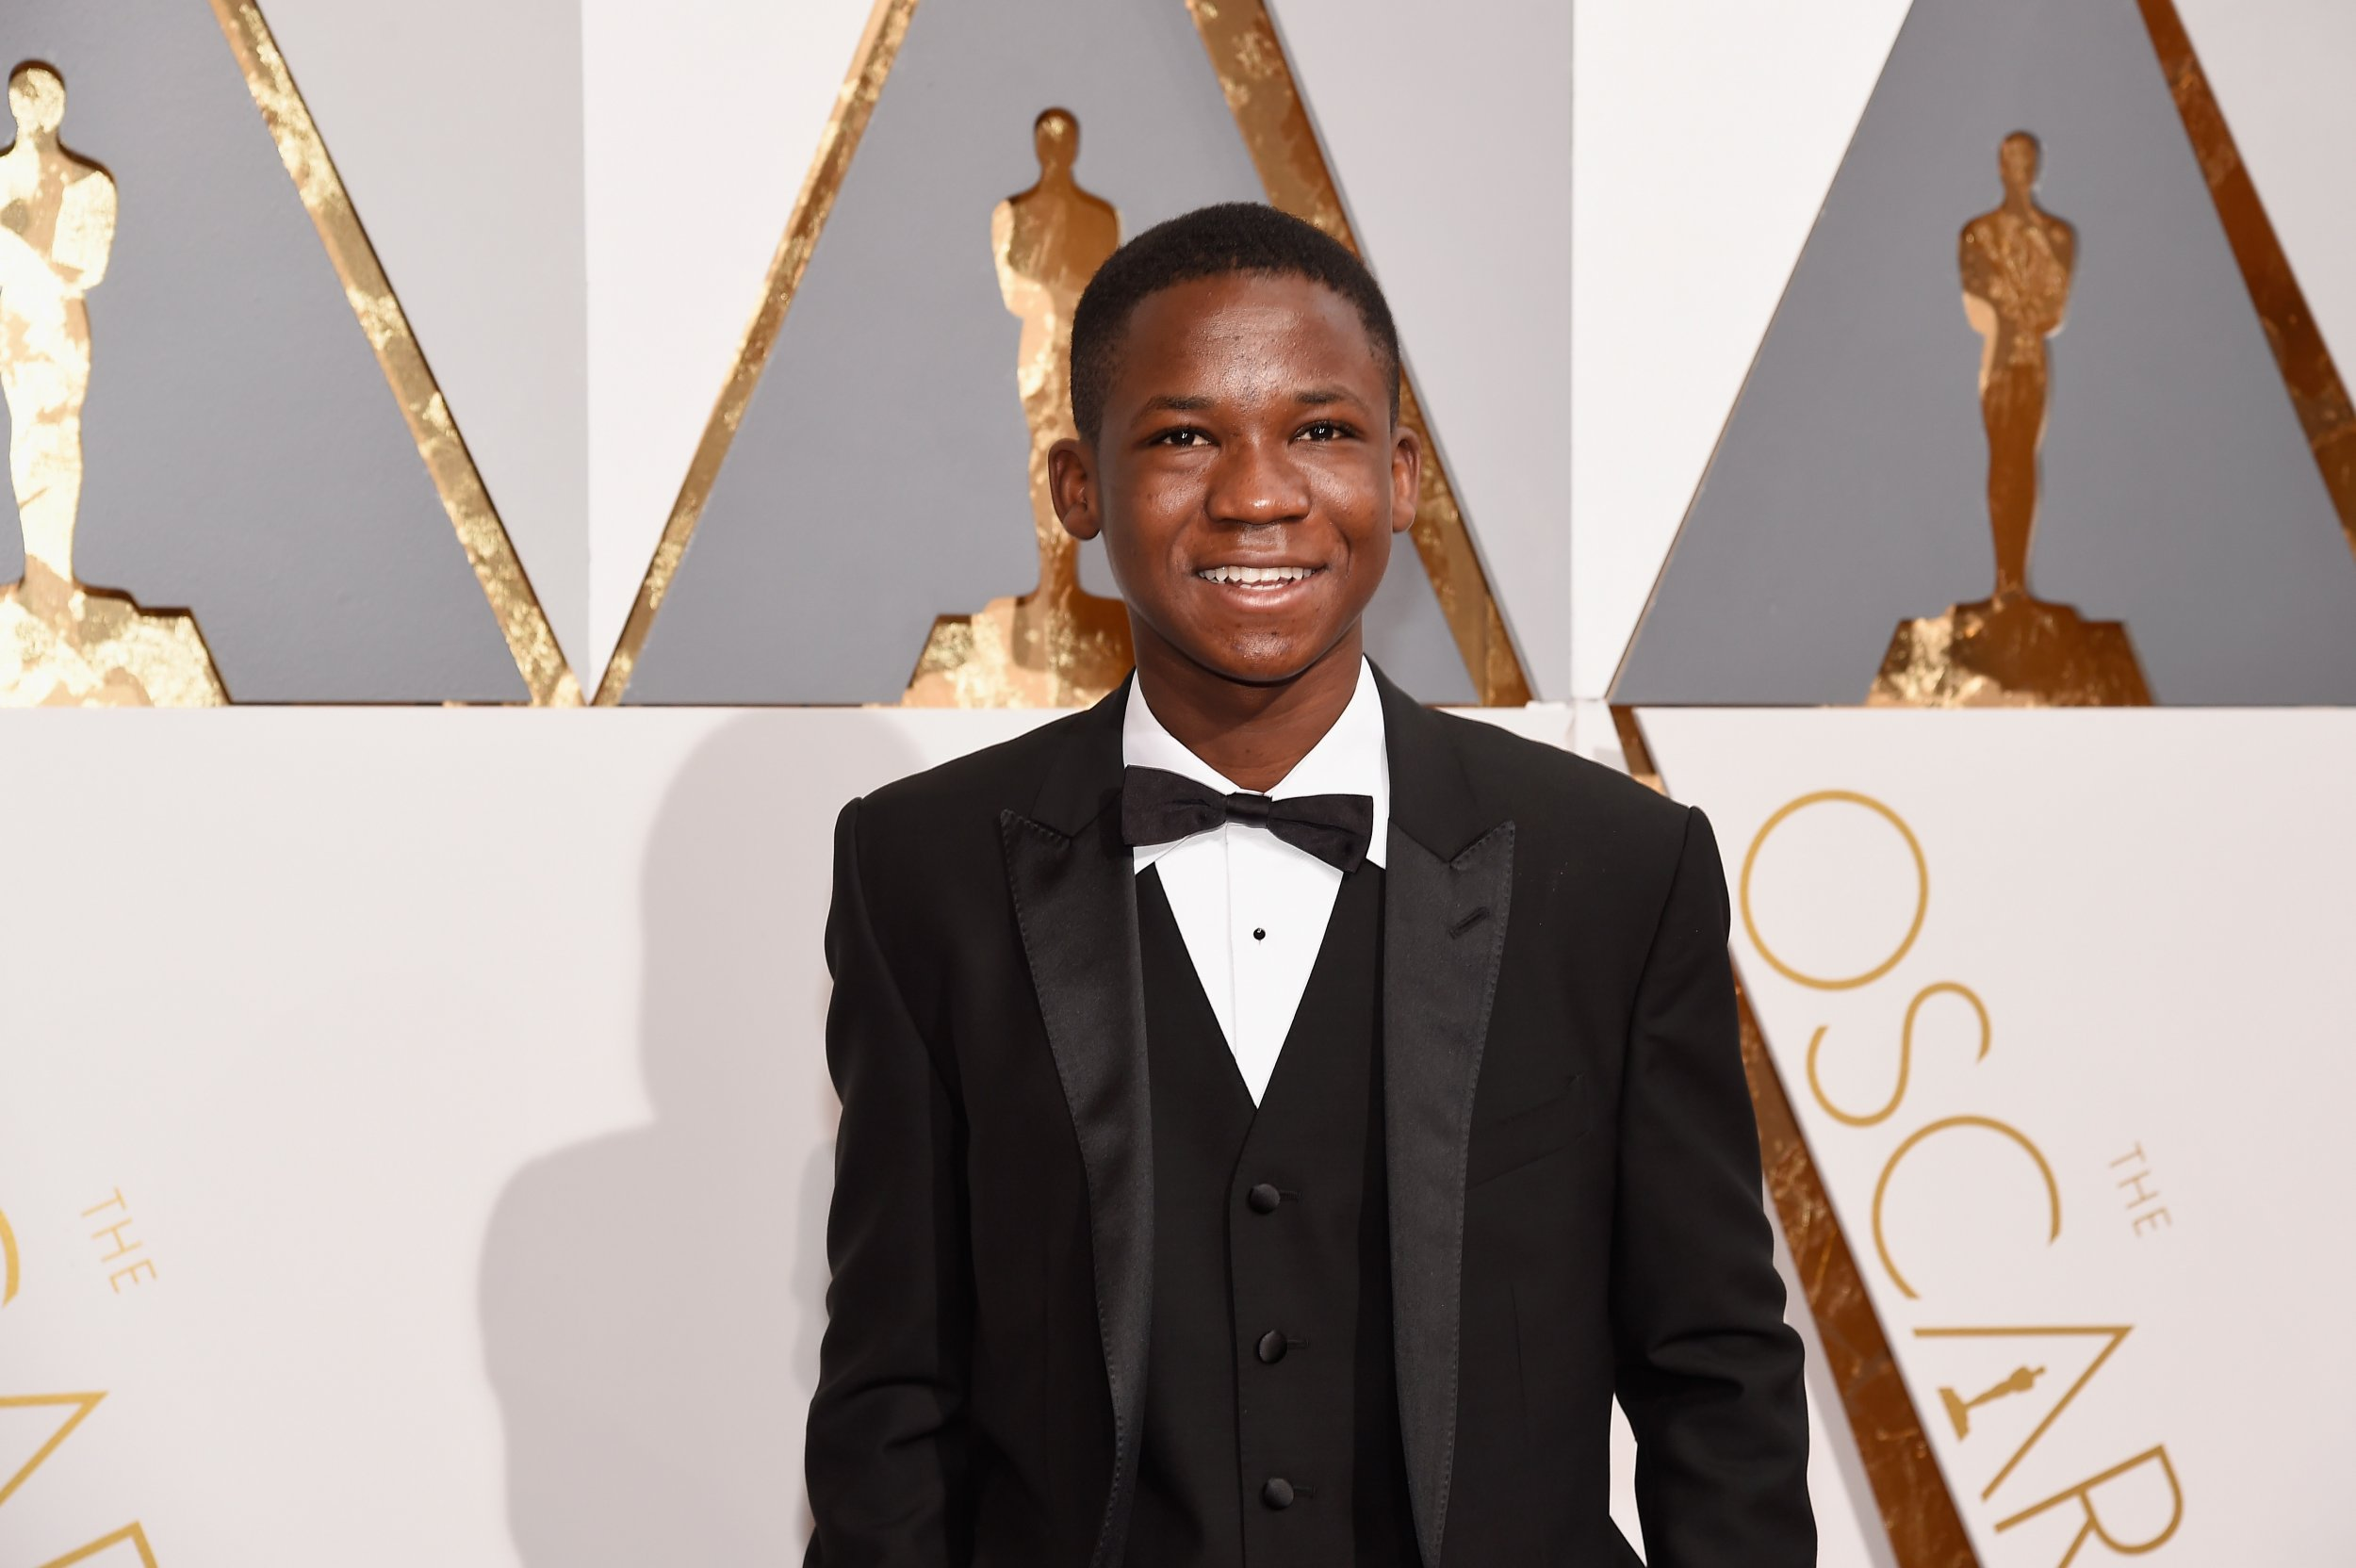 Abraham Attah at the Oscars